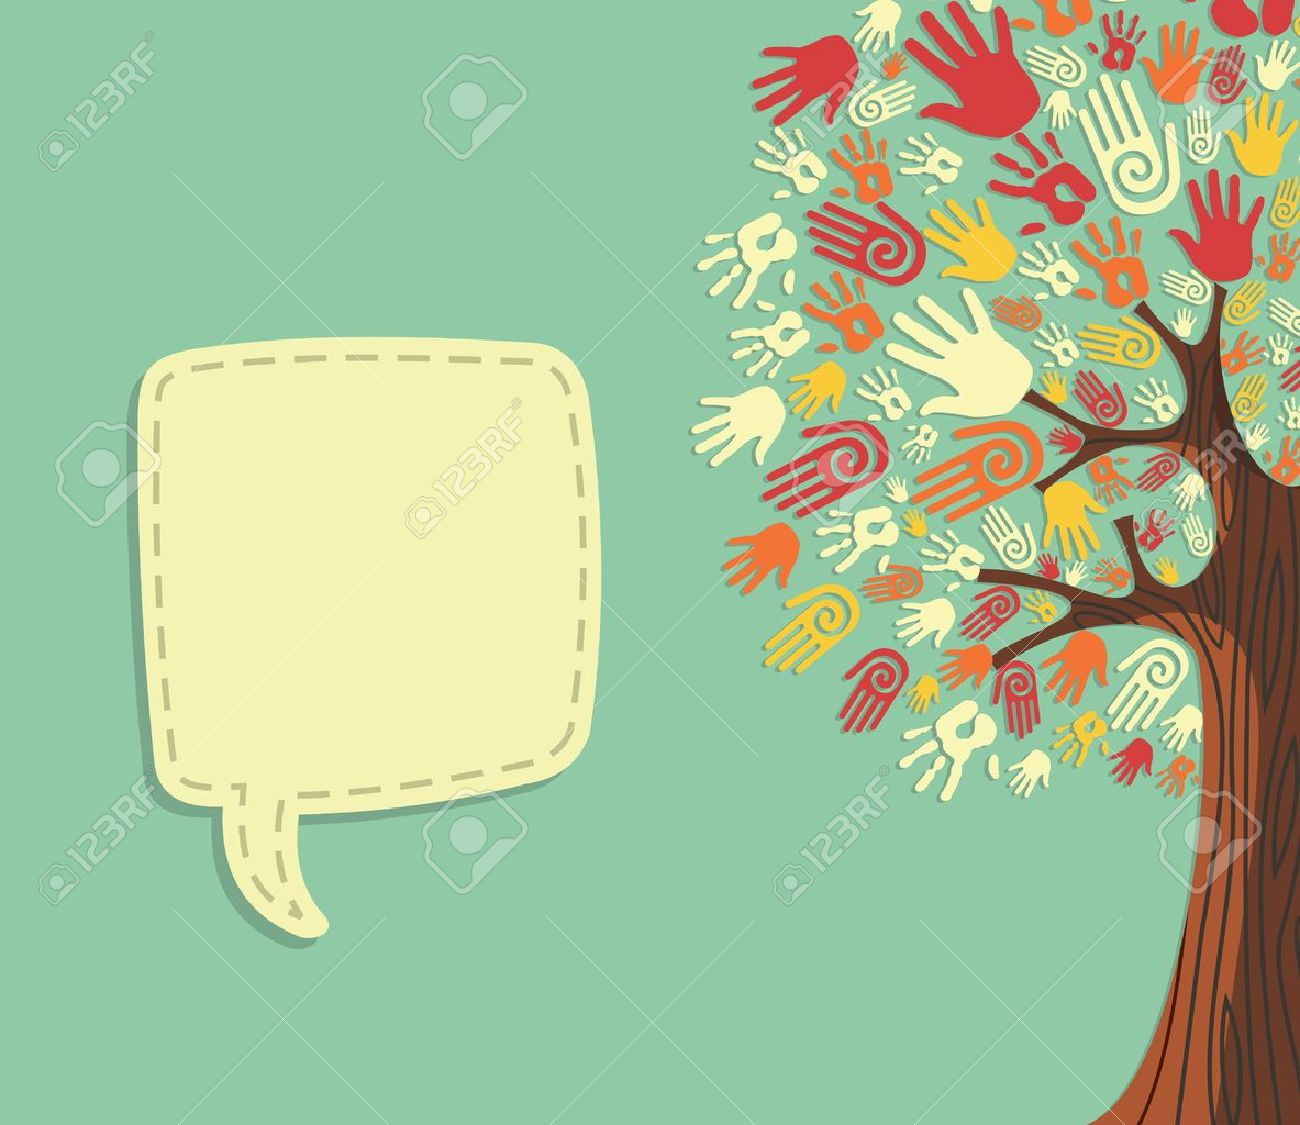 Attractive Diversity Tree Hands Illustration With Blank For Text Greeting Card Template.  File Layered For Easy Regard To Free Blank Greeting Card Templates